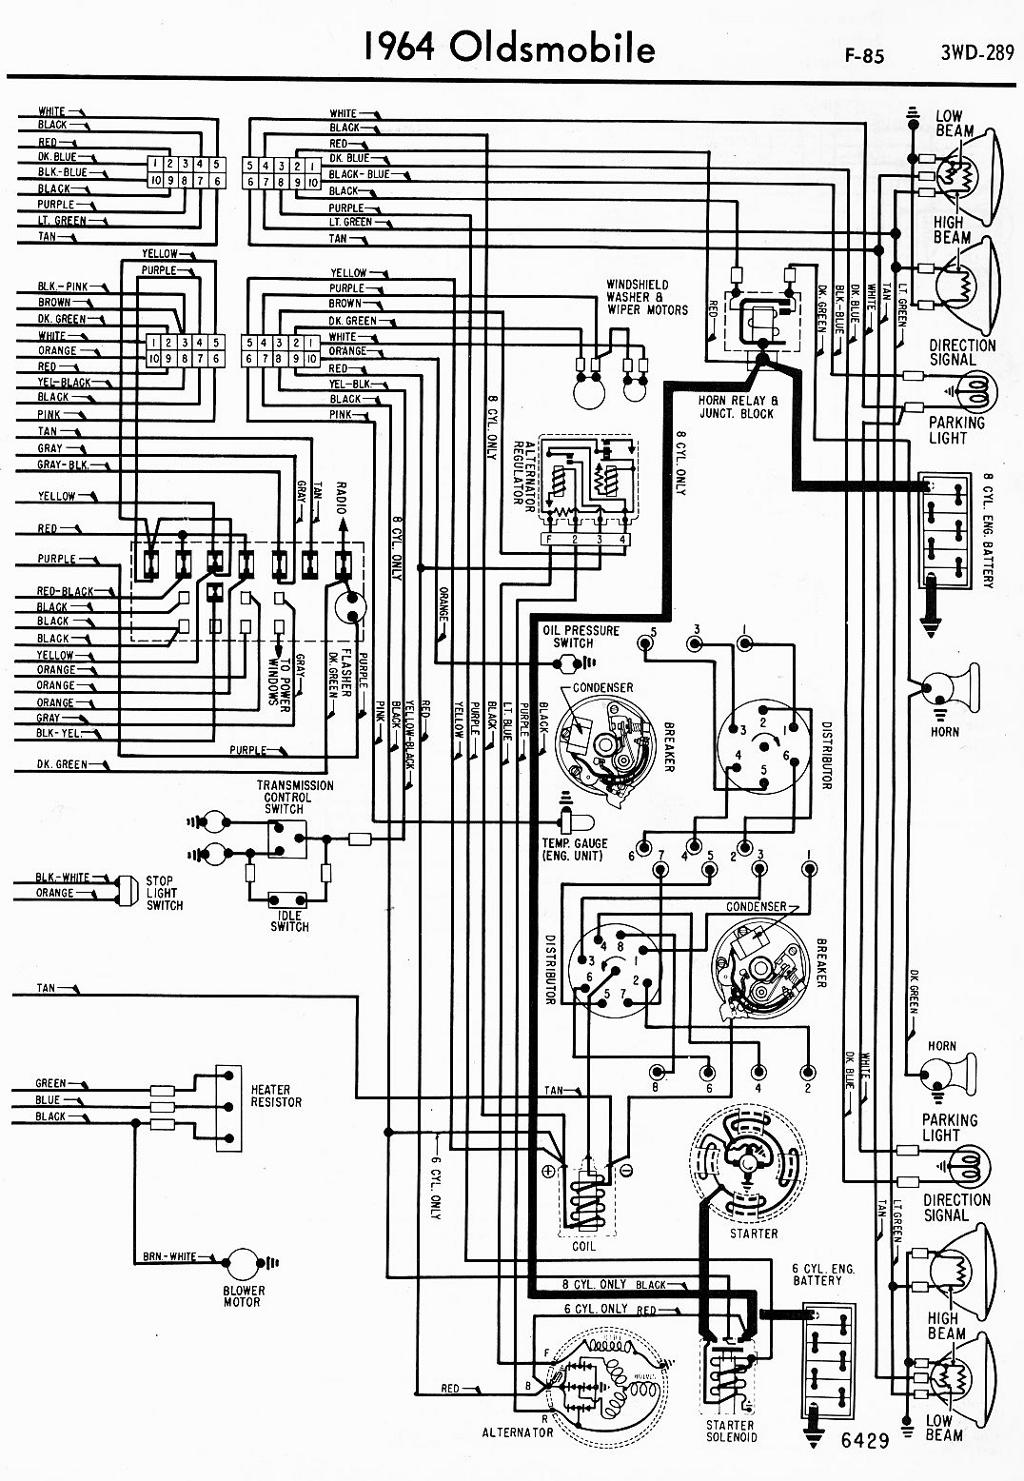 small resolution of 1965 olds 442 wiring diagram explained wiring diagrams 1971 oldsmobile cutlass wiring diagram 1967 oldsmobile